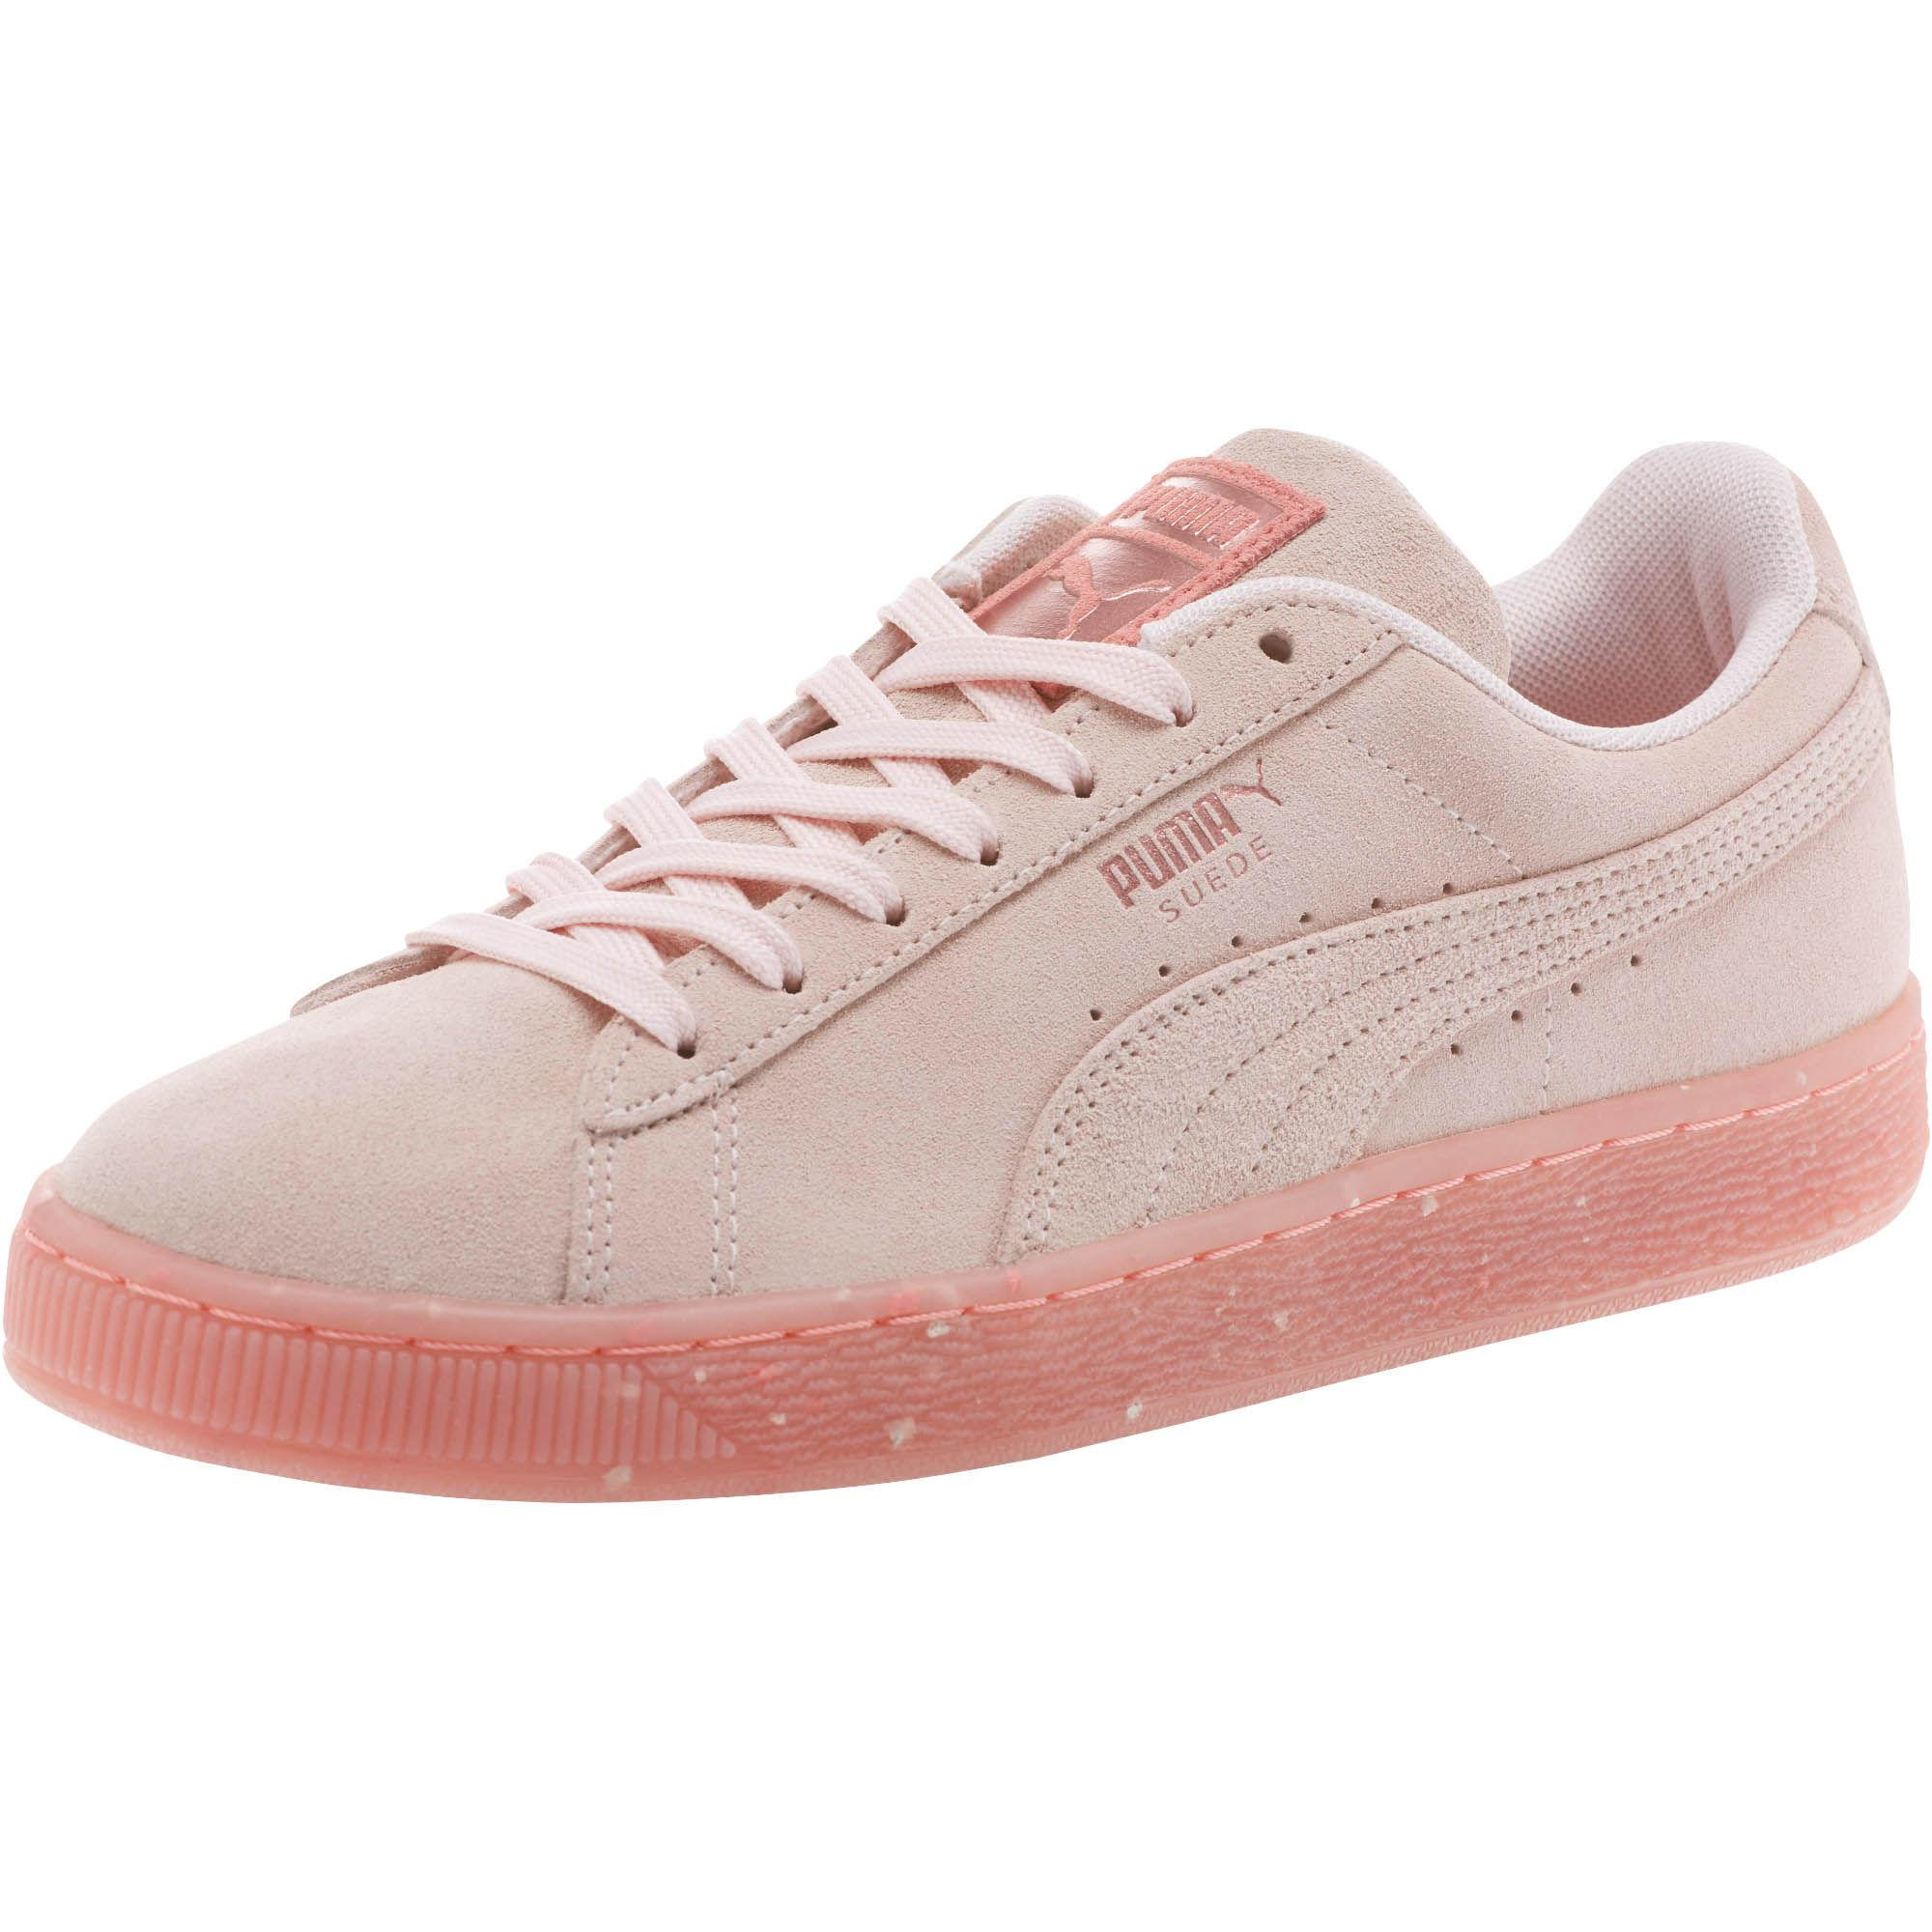 new product 69642 66a45 PUMA Pink Suede Classic Glitz 's Sneakers